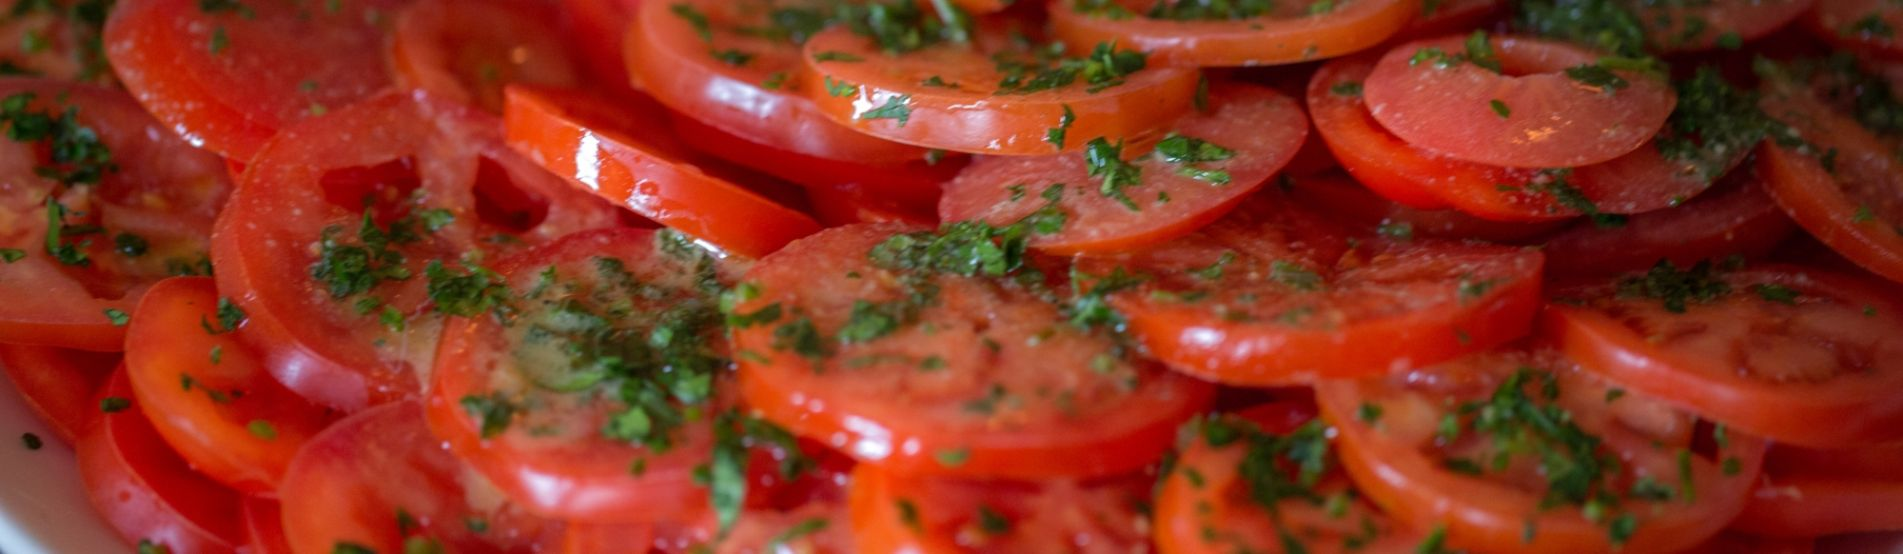 Sliced Tomatoes Close Up RESIZE